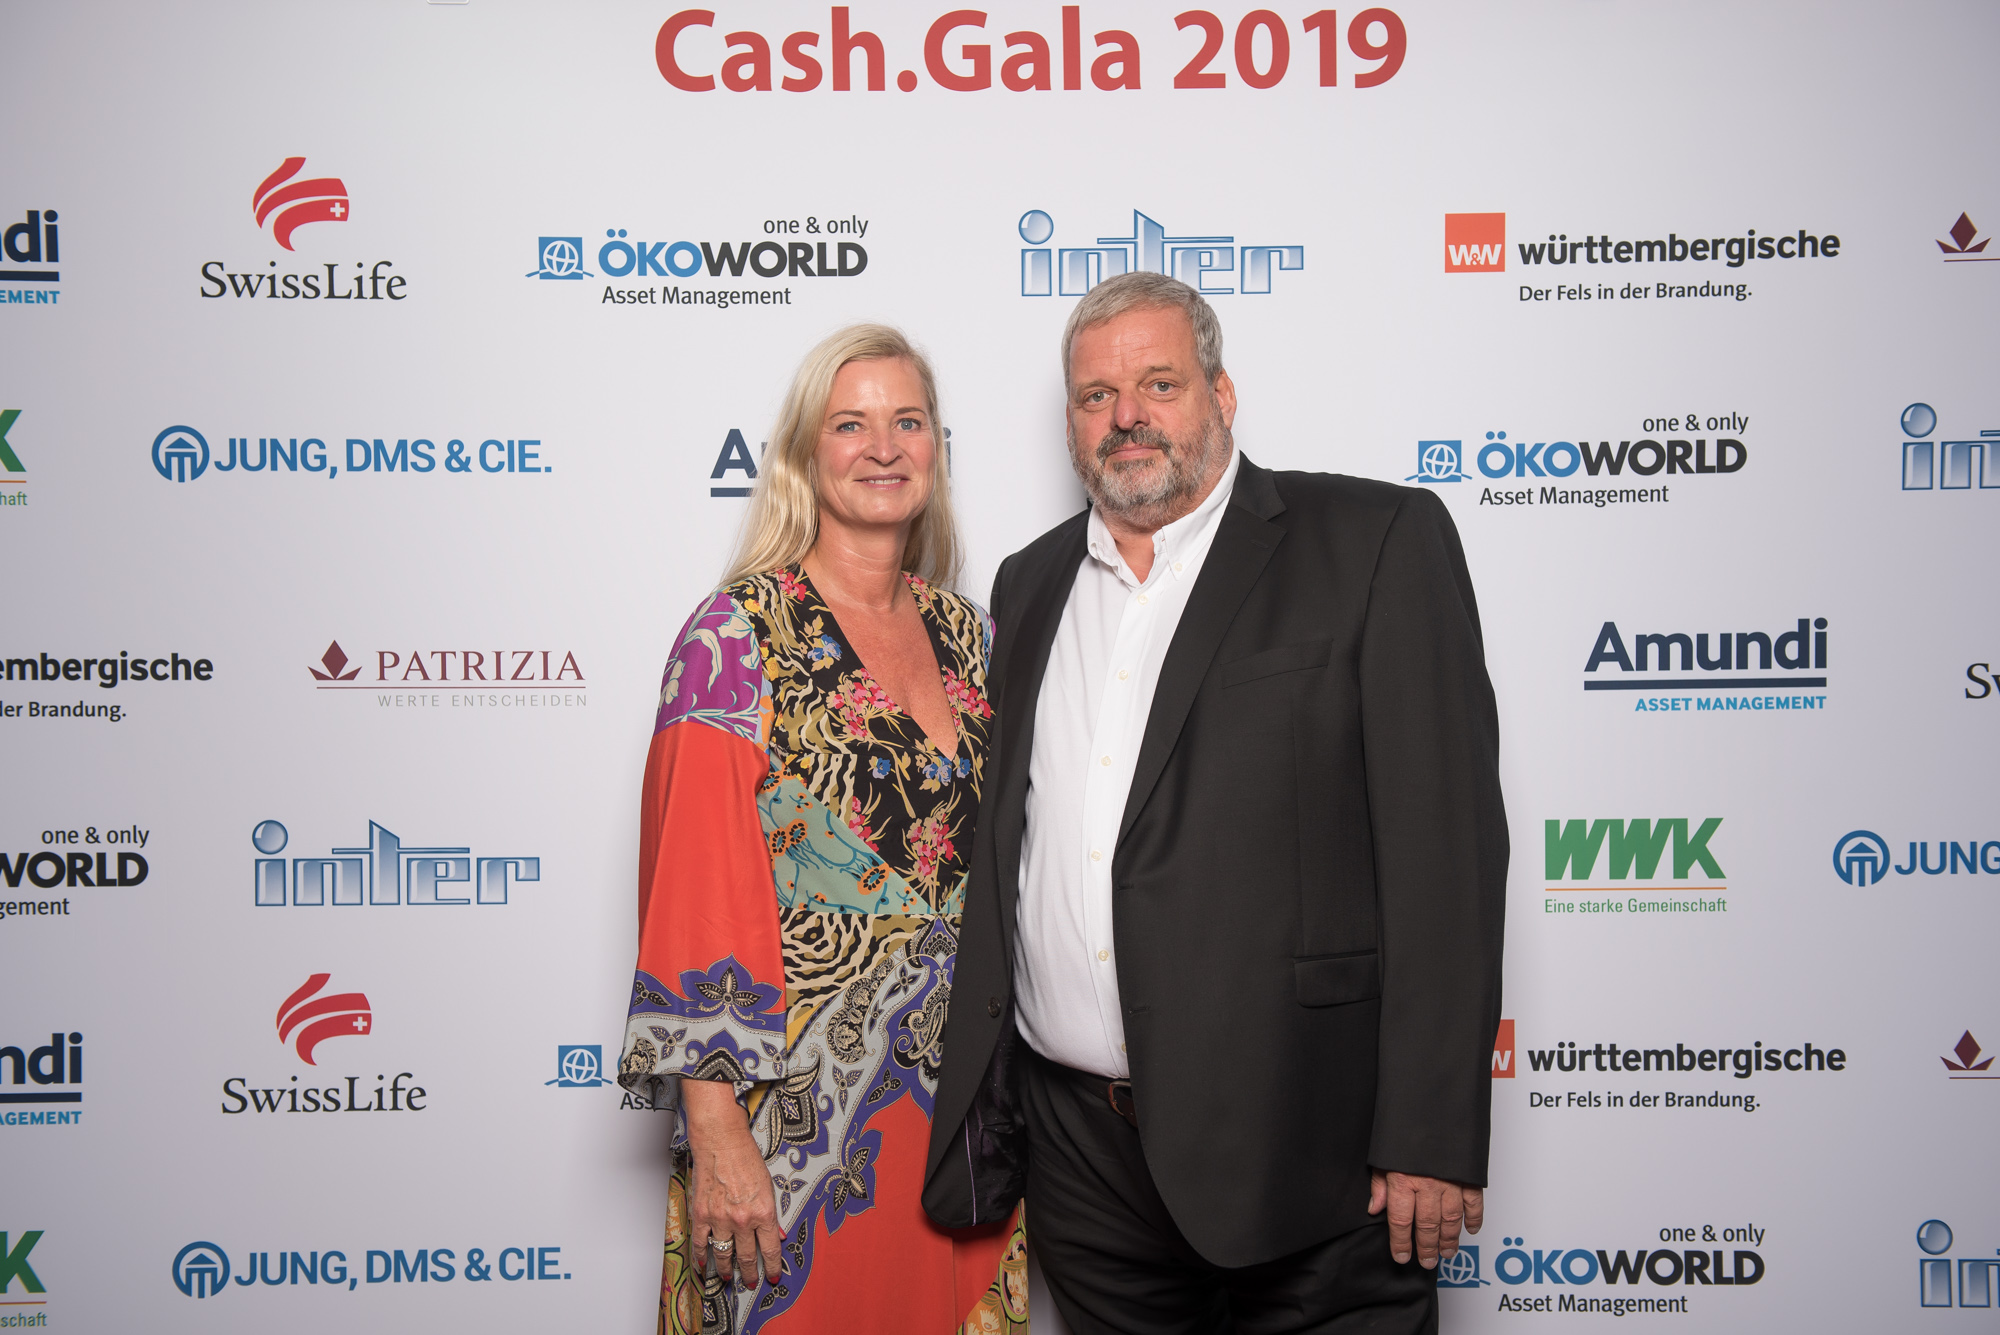 CashGala 2019 0028 AM DSC7023 in Cash.Gala 2019